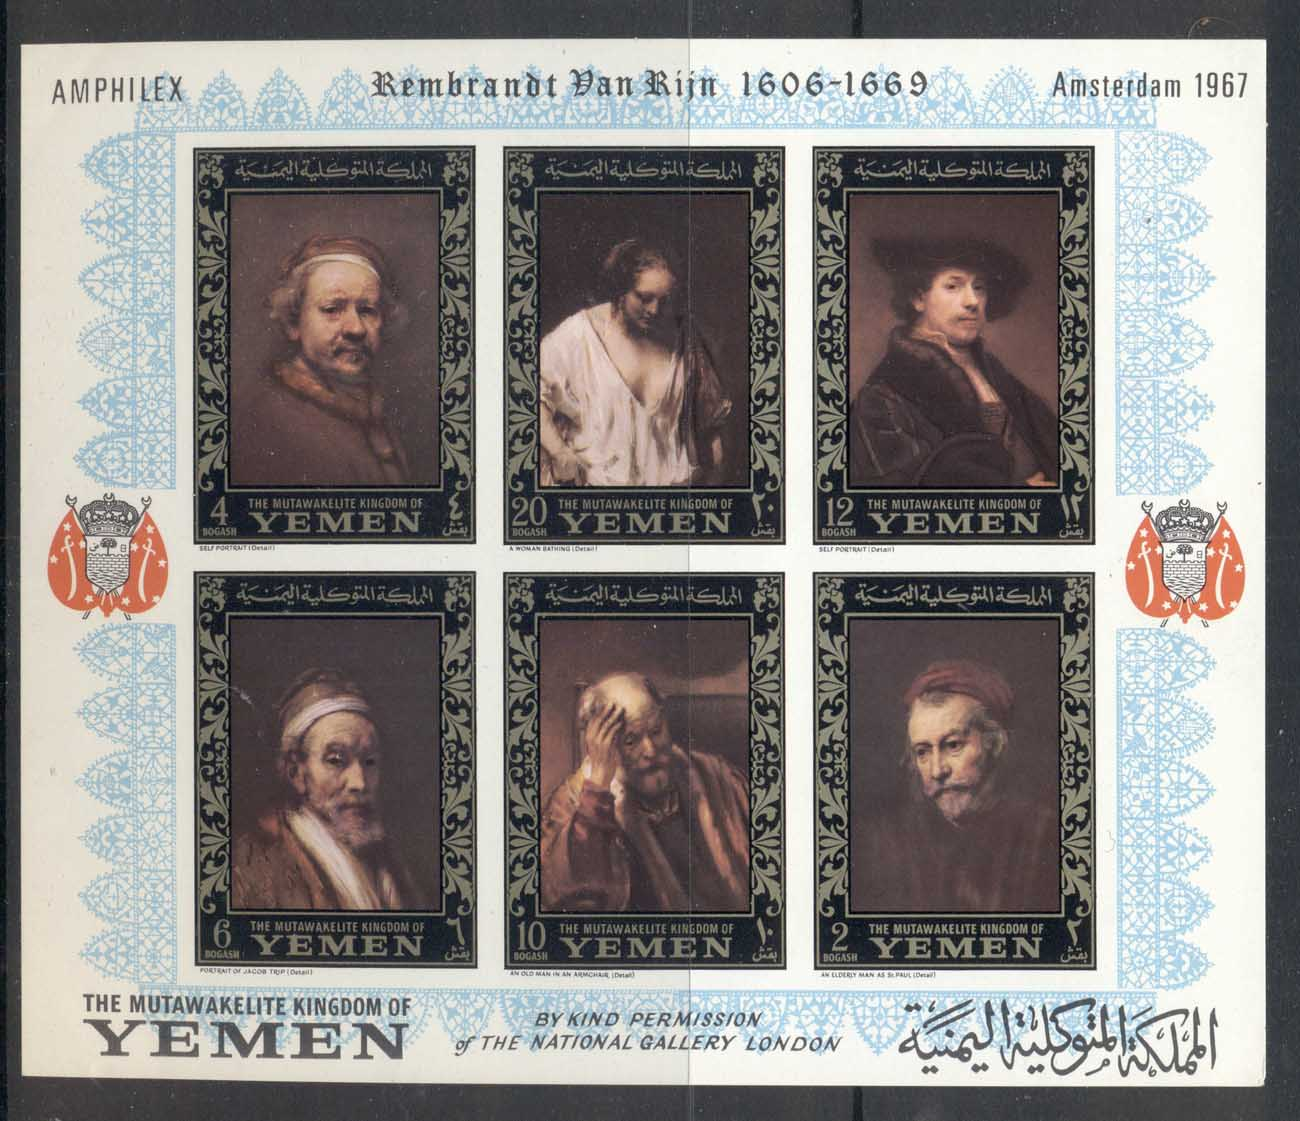 Yemen Kingdom 1967 Mi#MSA37B Rembrandt Paintings, Amphilex Stamp Ex, gold borders MS IMPERF MUH